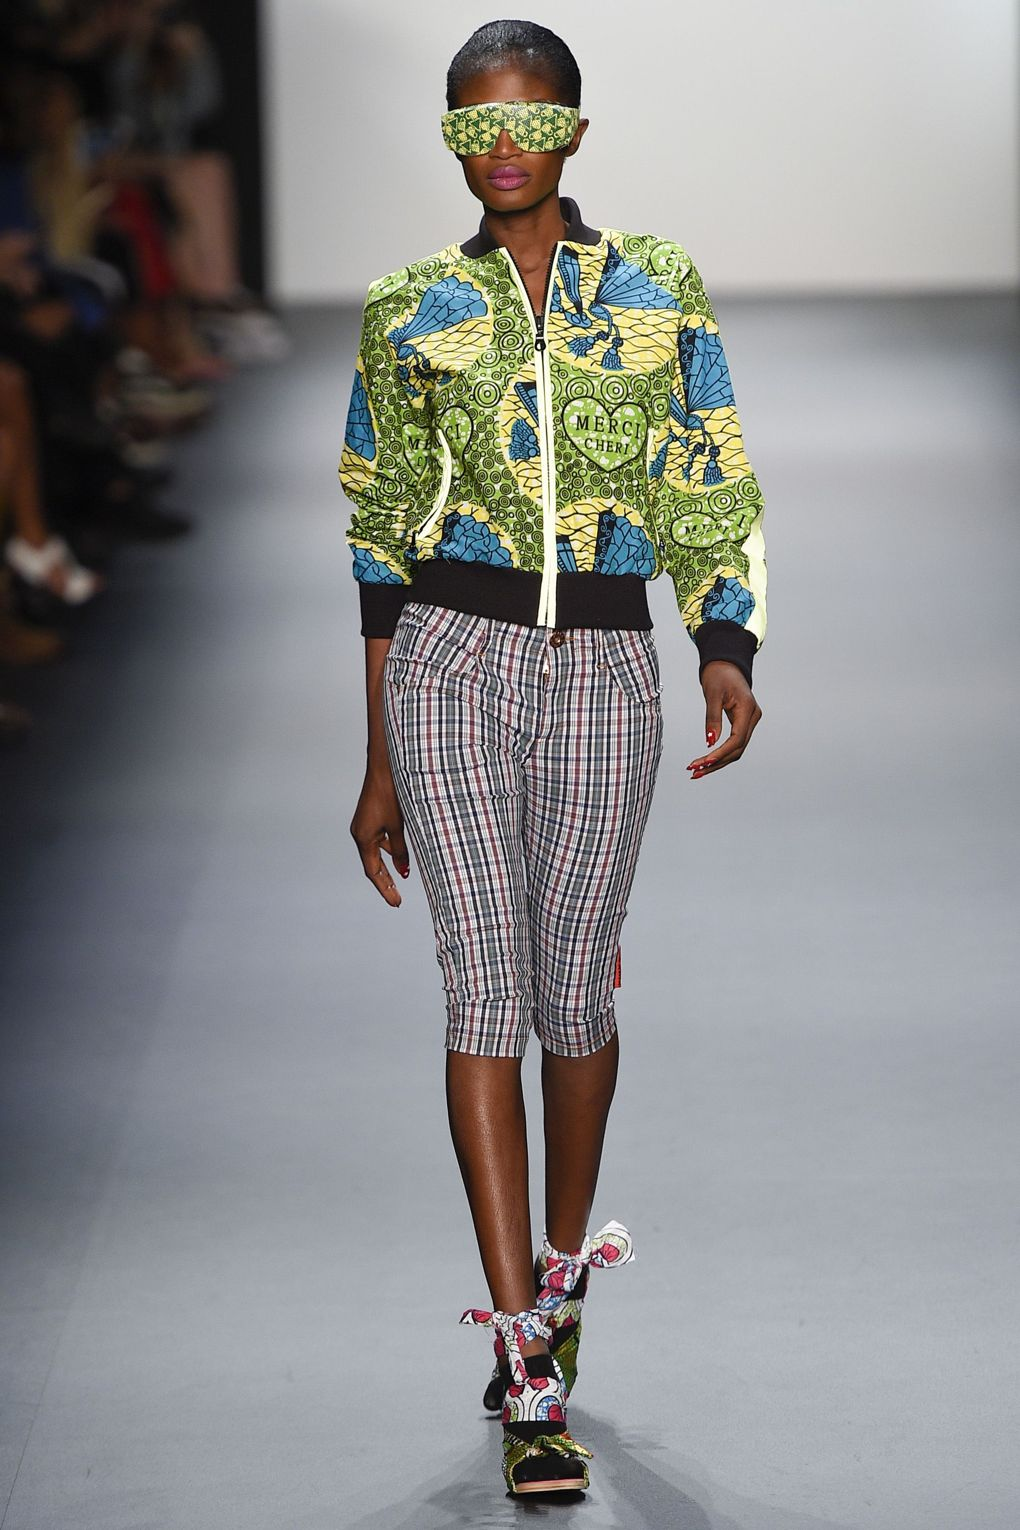 fashion-week-xuly-be%cc%88t-xuly-be%cc%88t-sprigsummer-2016-ready-to-wear-collection-5